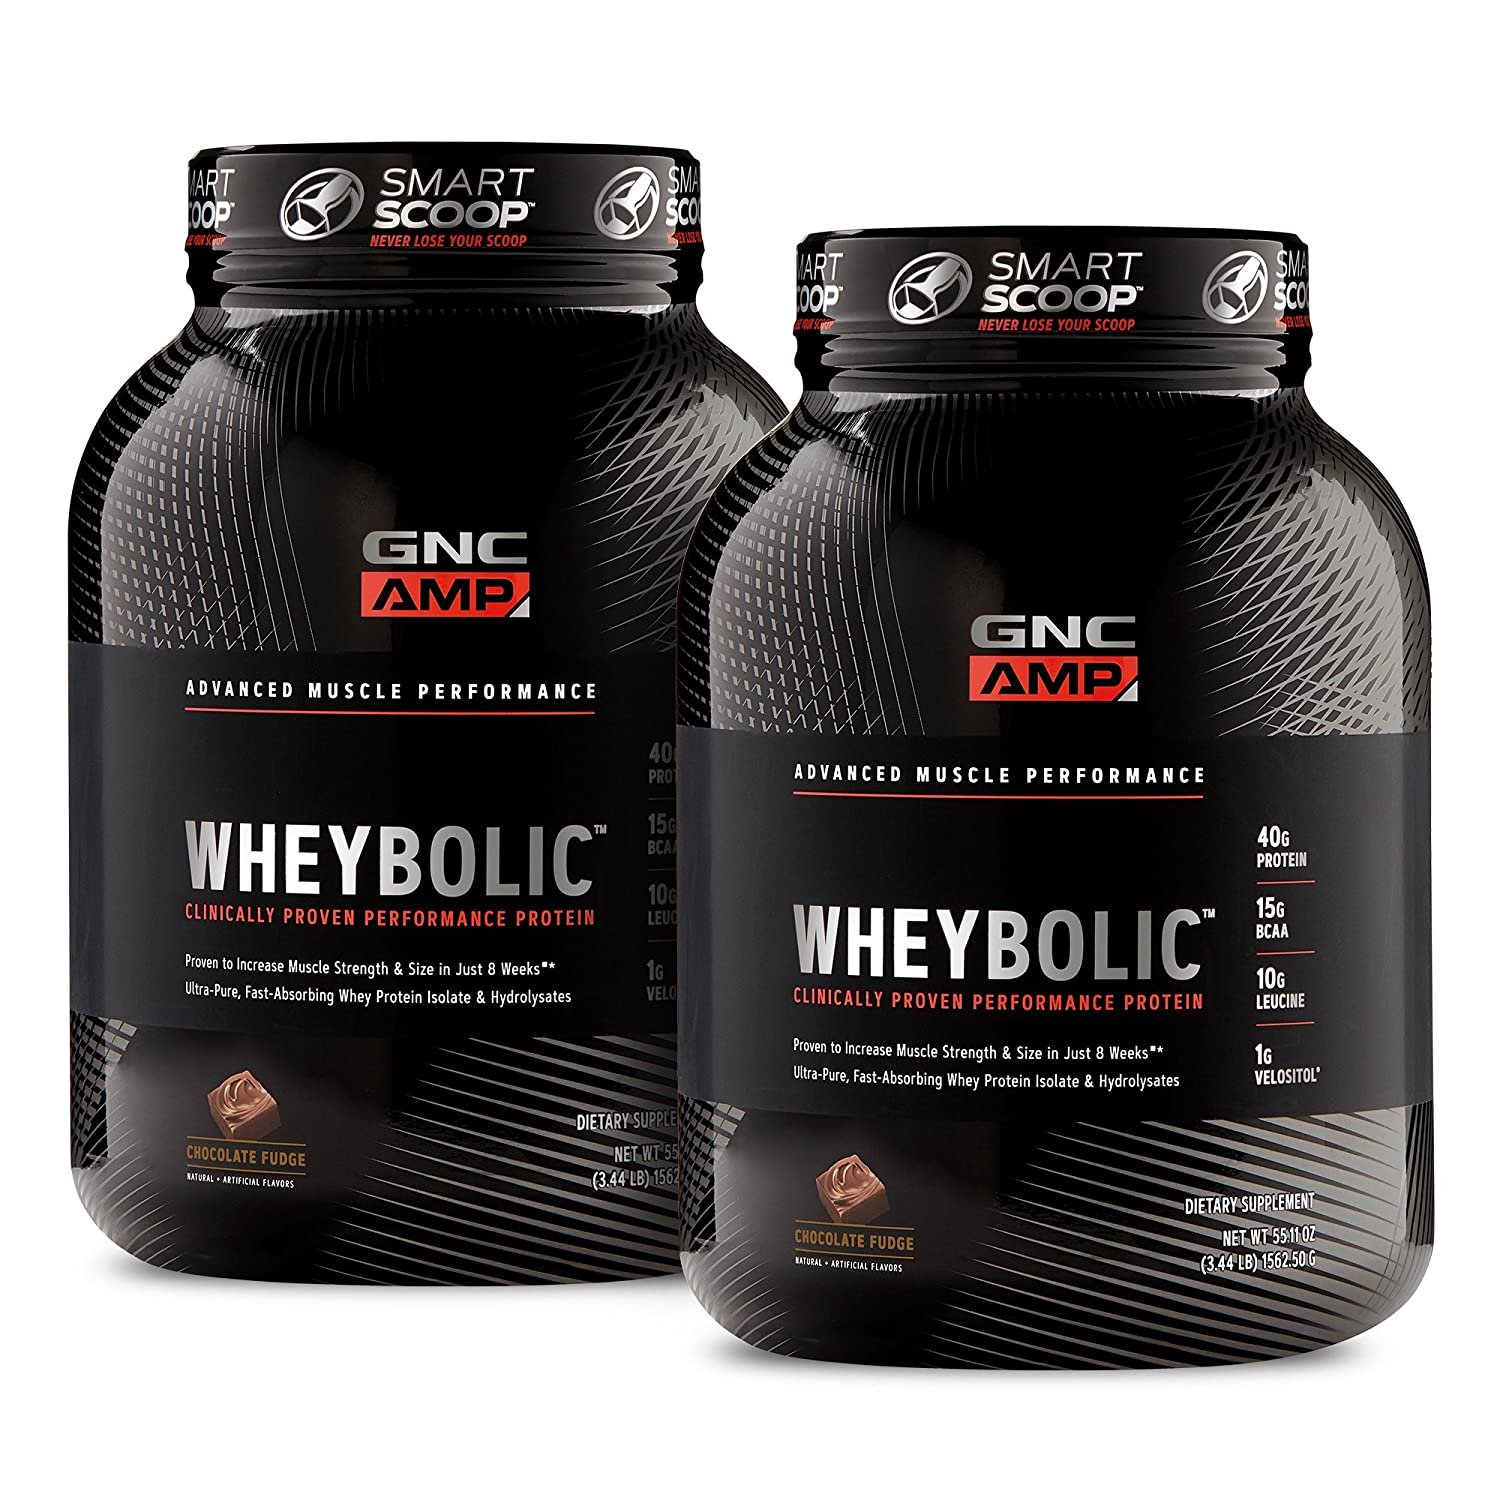 GNC AMP Wheybolic – Chocolate Fudge Bundle